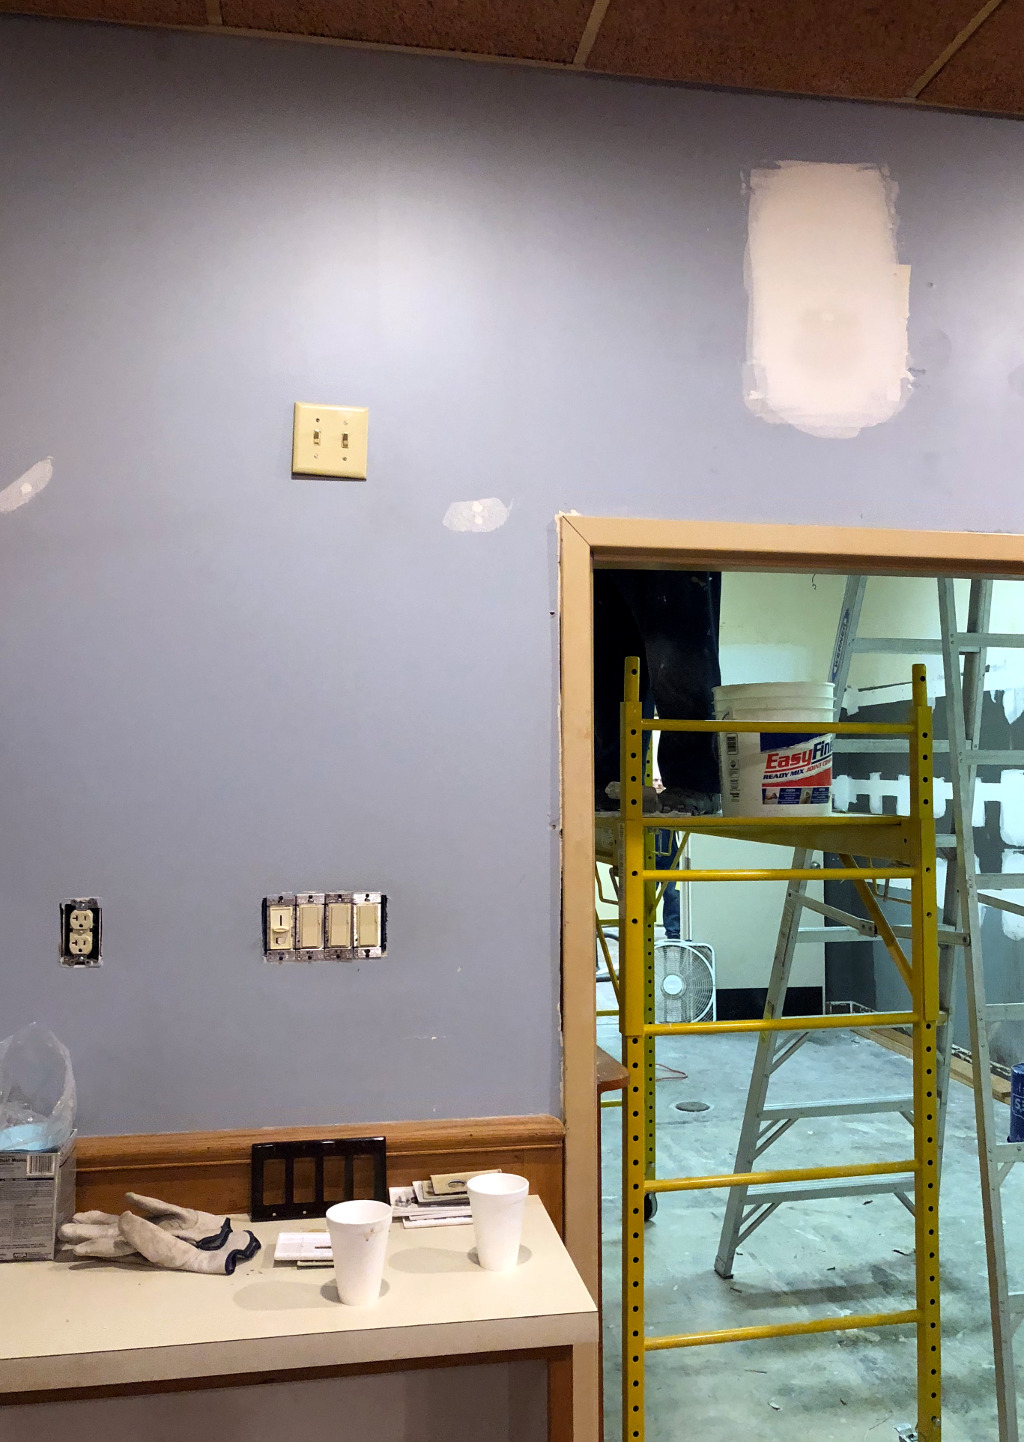 Wall and electrical repairs in the snack bar